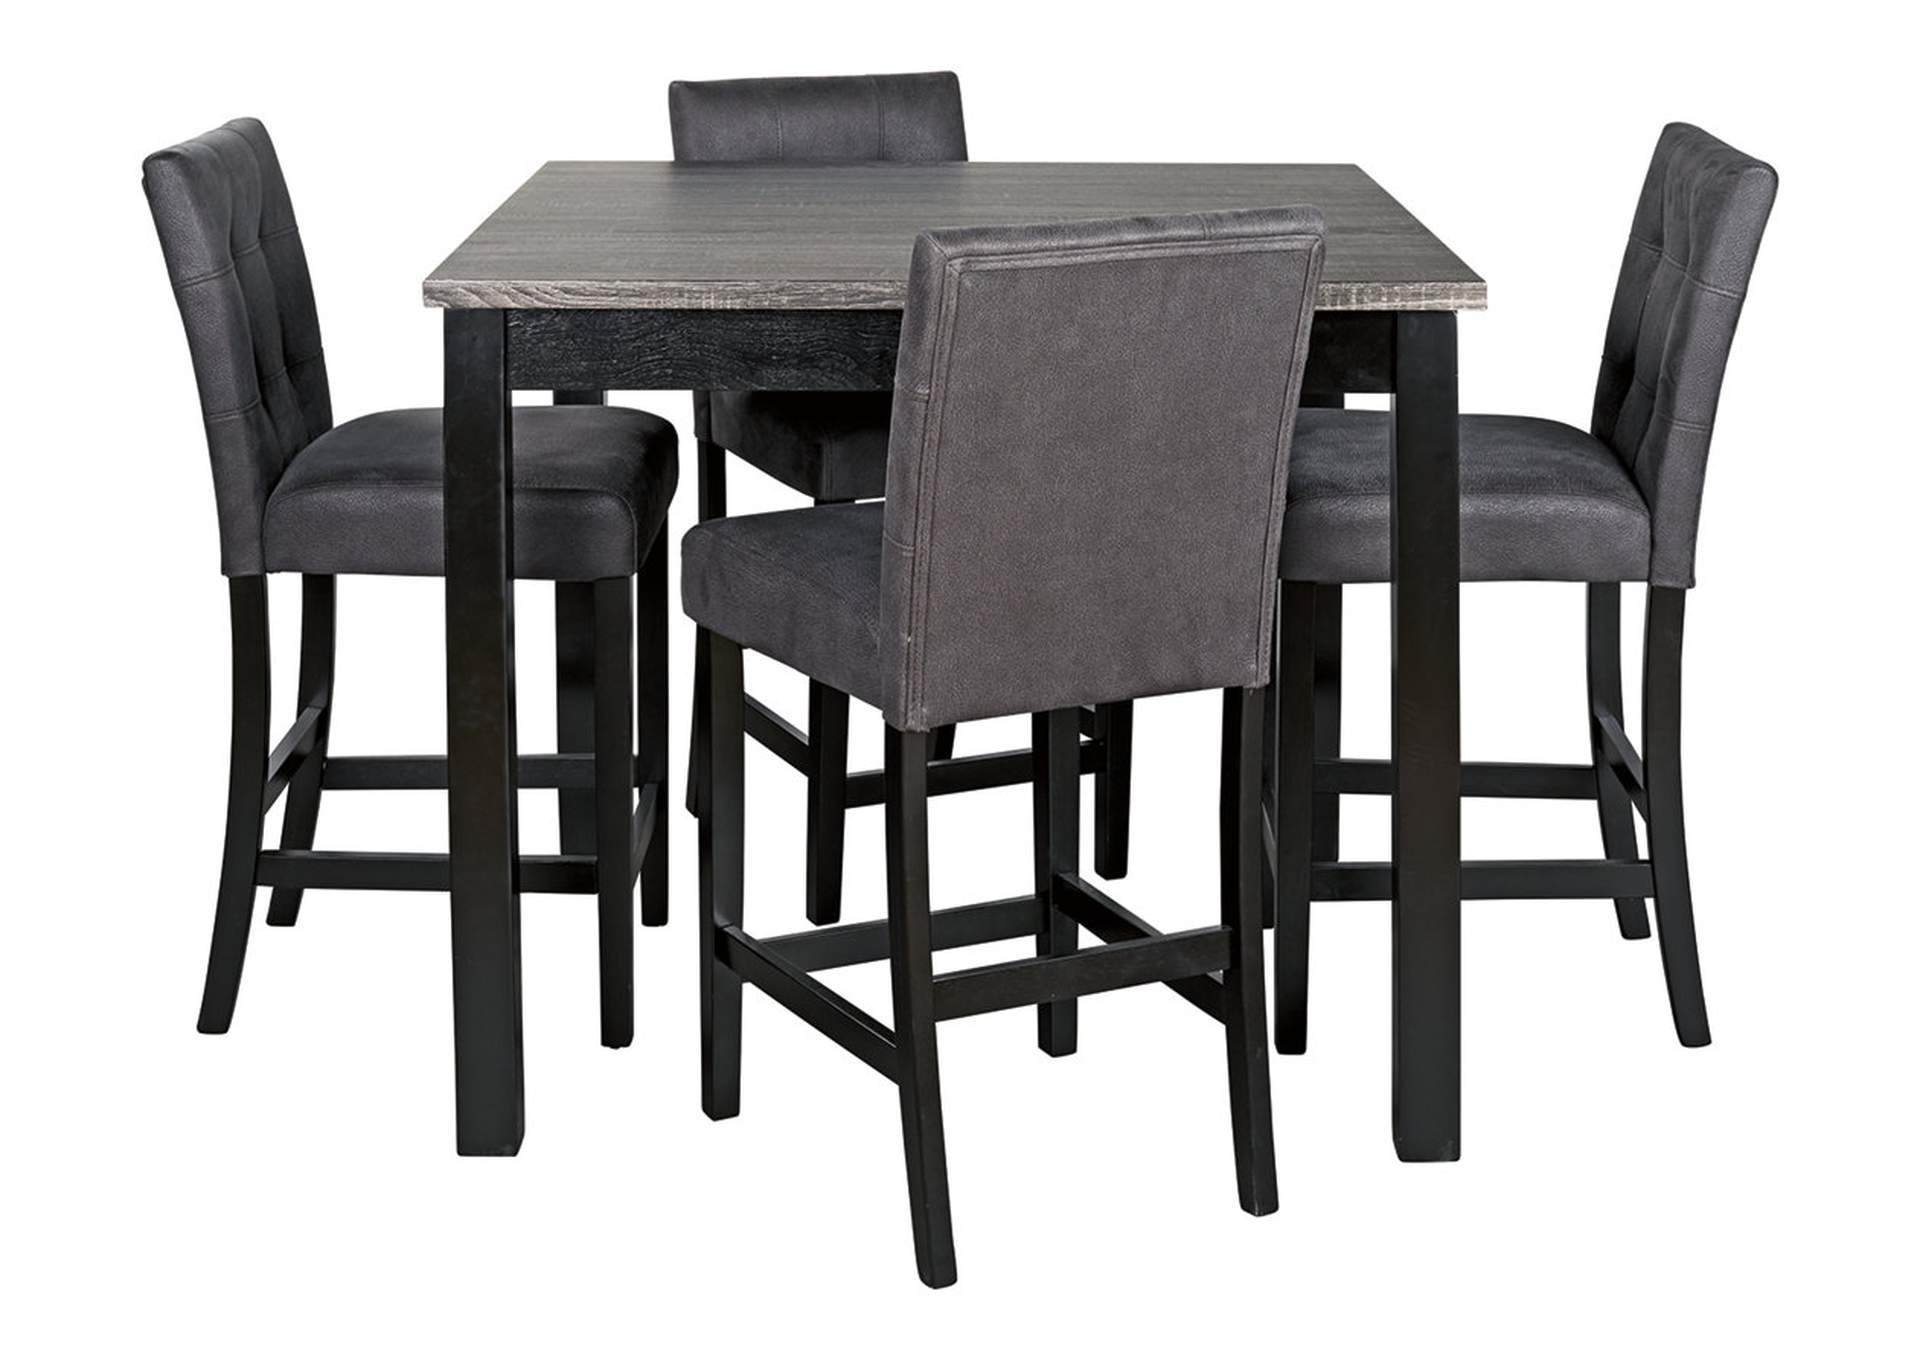 Garvine Counter Dining Table and Bar Stools (Set of 5)